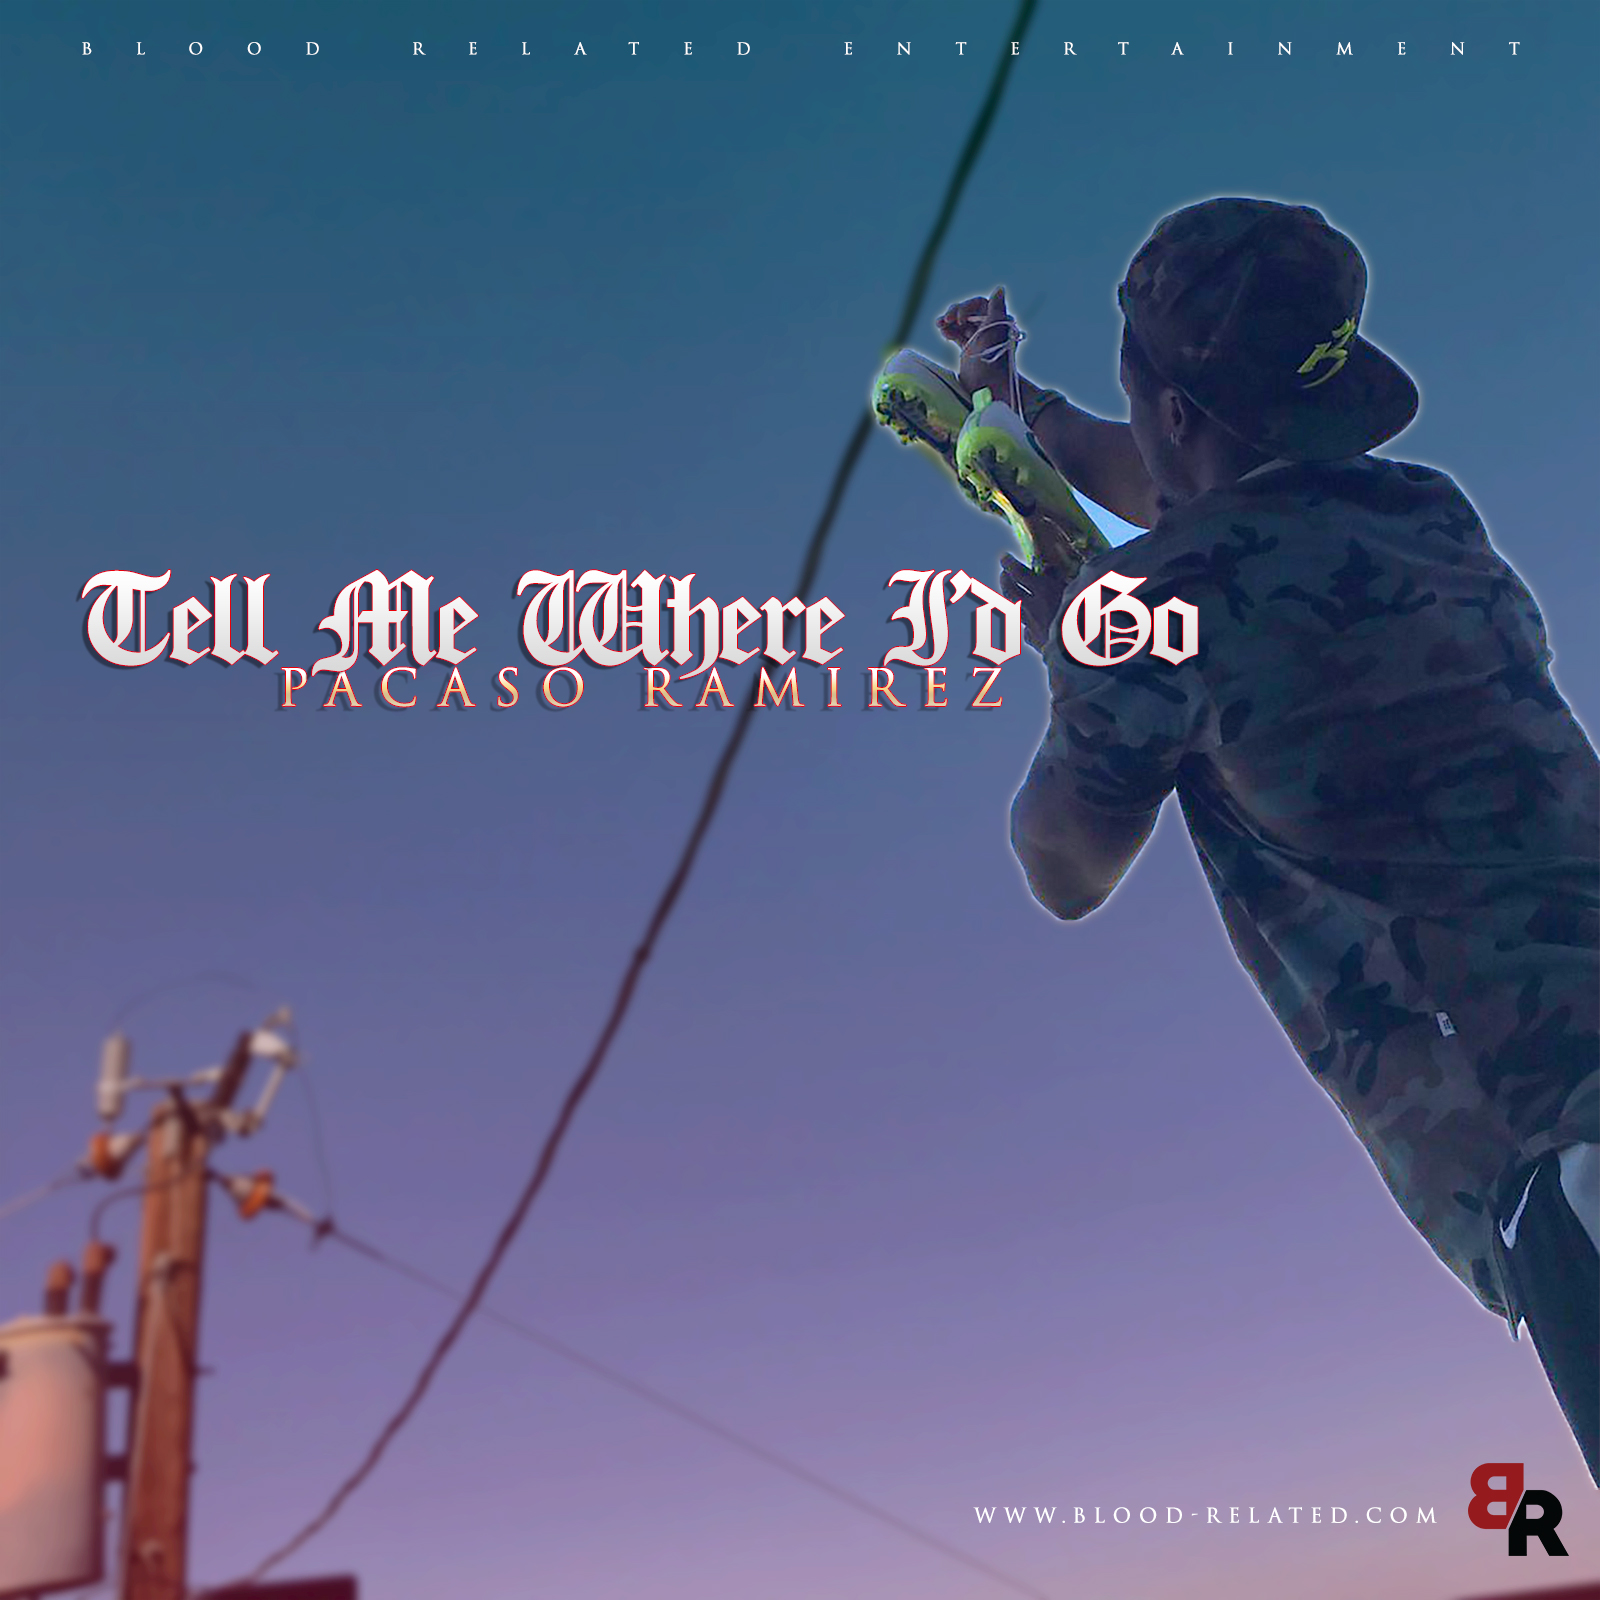 Tell Me Where I'd Go by Contemporary Hip Hop Artist Pacaso Ramirez